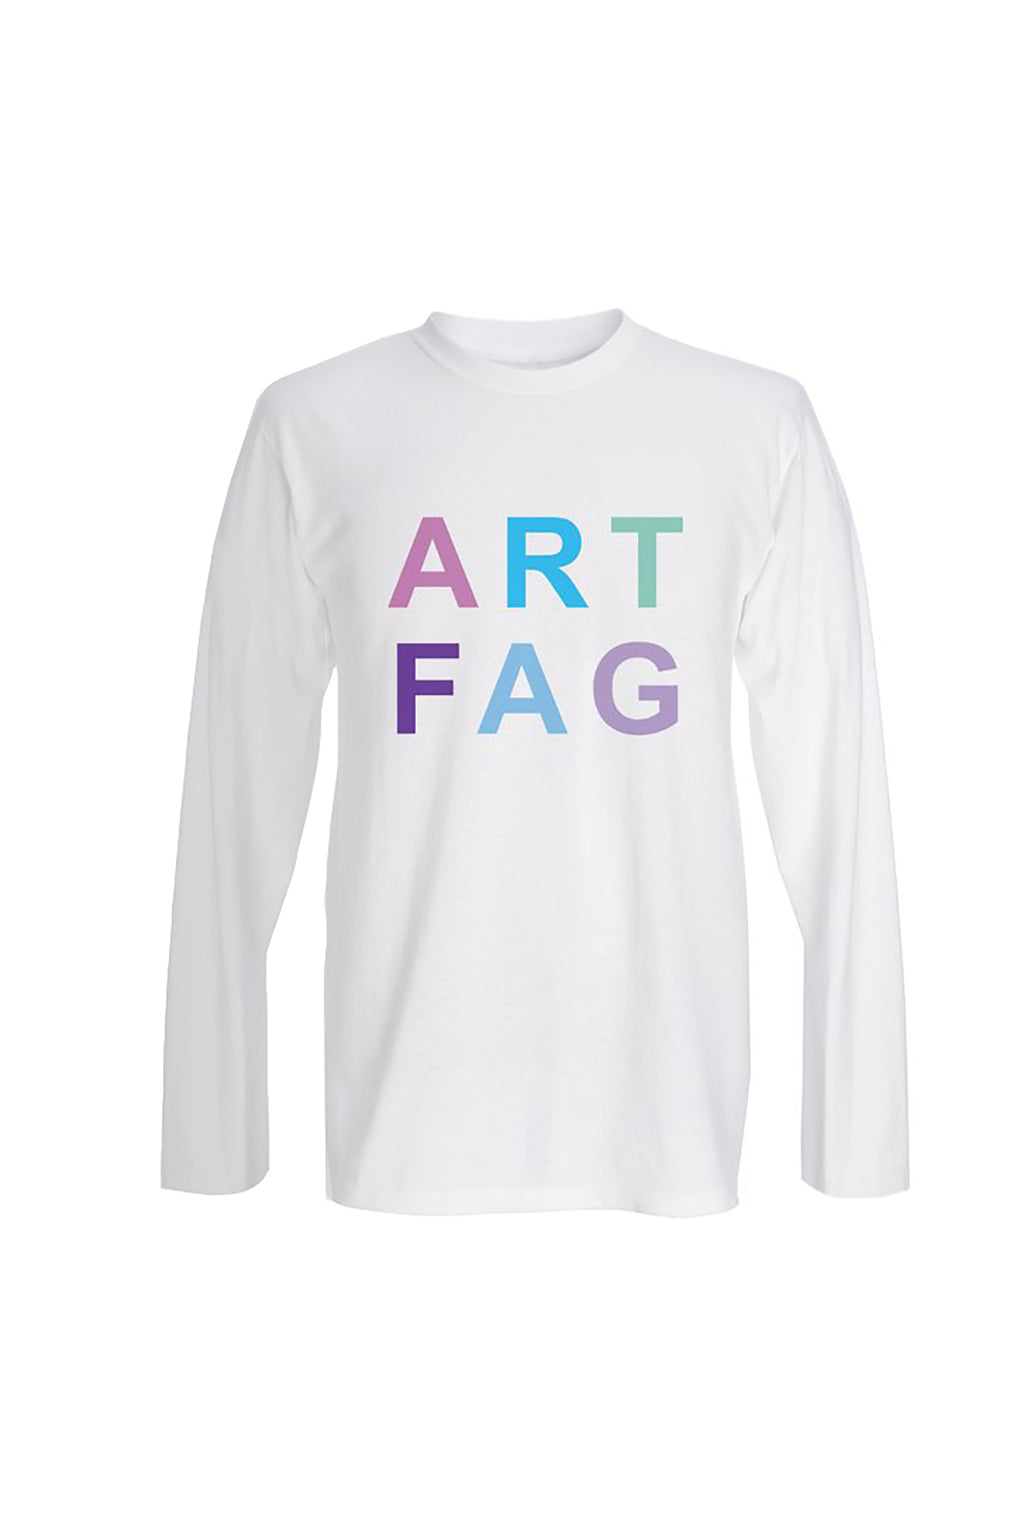 Kenny Schachter 'Art Fag' Long Sleeve T-shirt